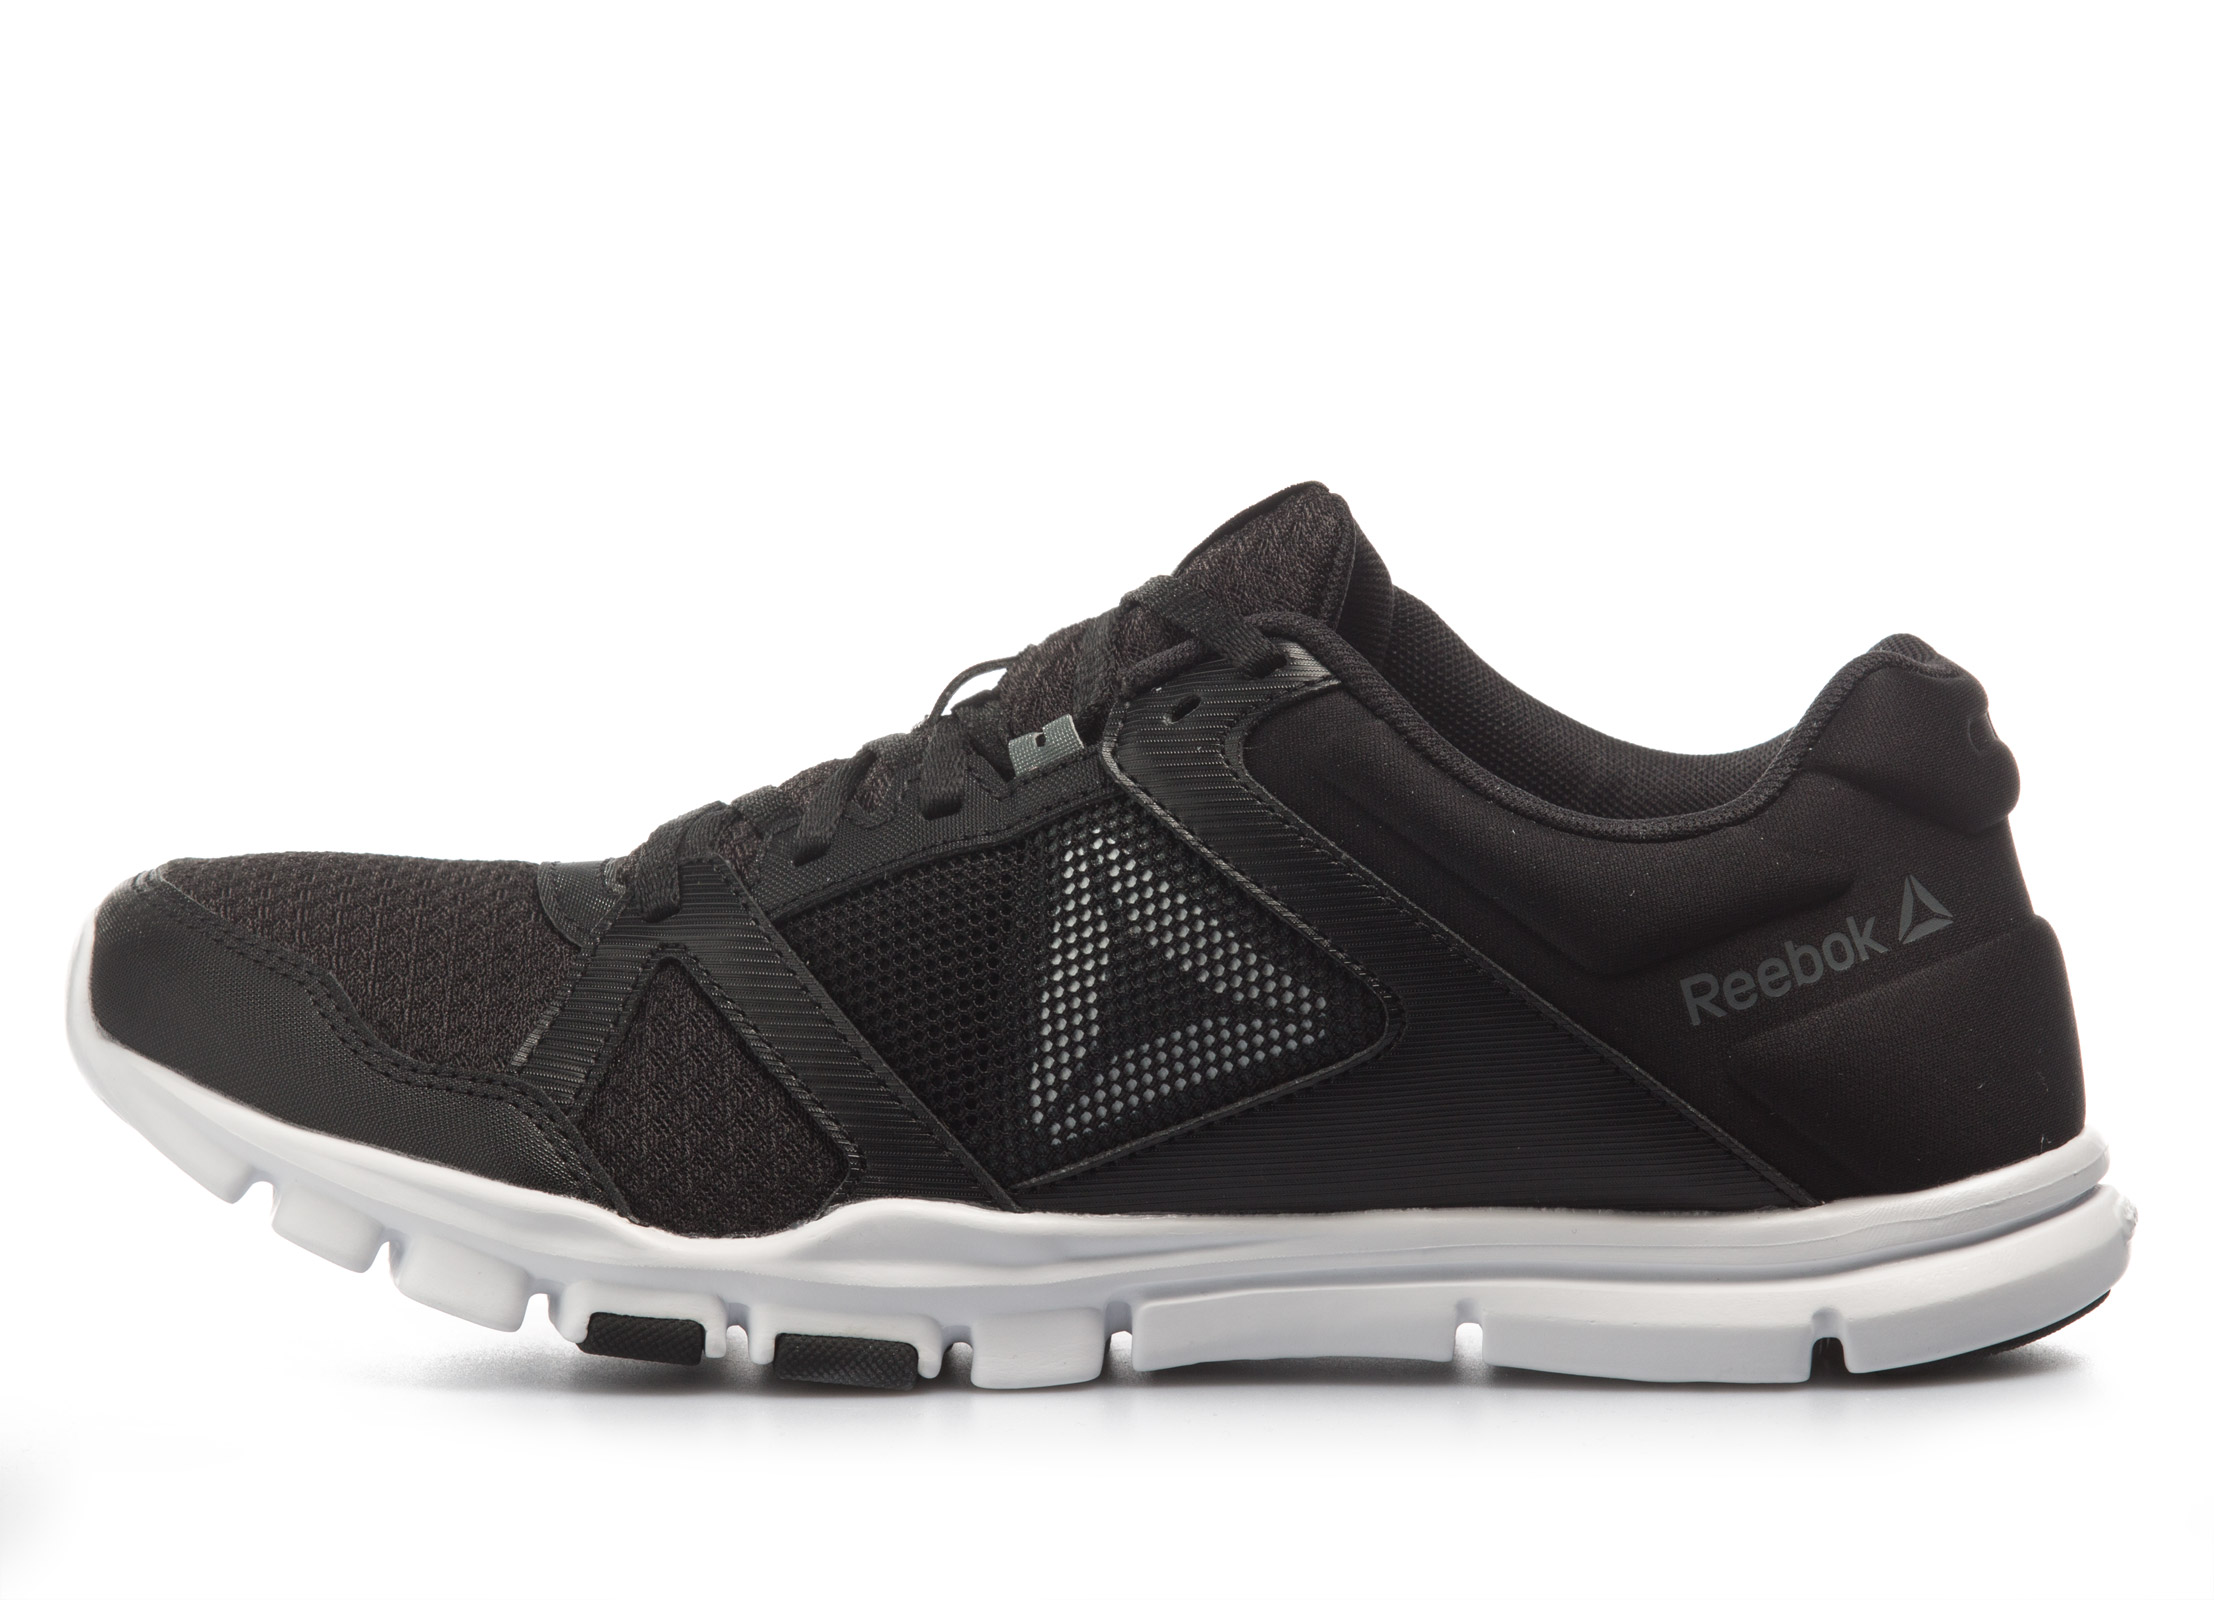 ΥΠΟΔΗΜΑΤΑ TRAINING Reebok Sport YOURFLEX TRAIN 10 MT BS9882 Μαύρο